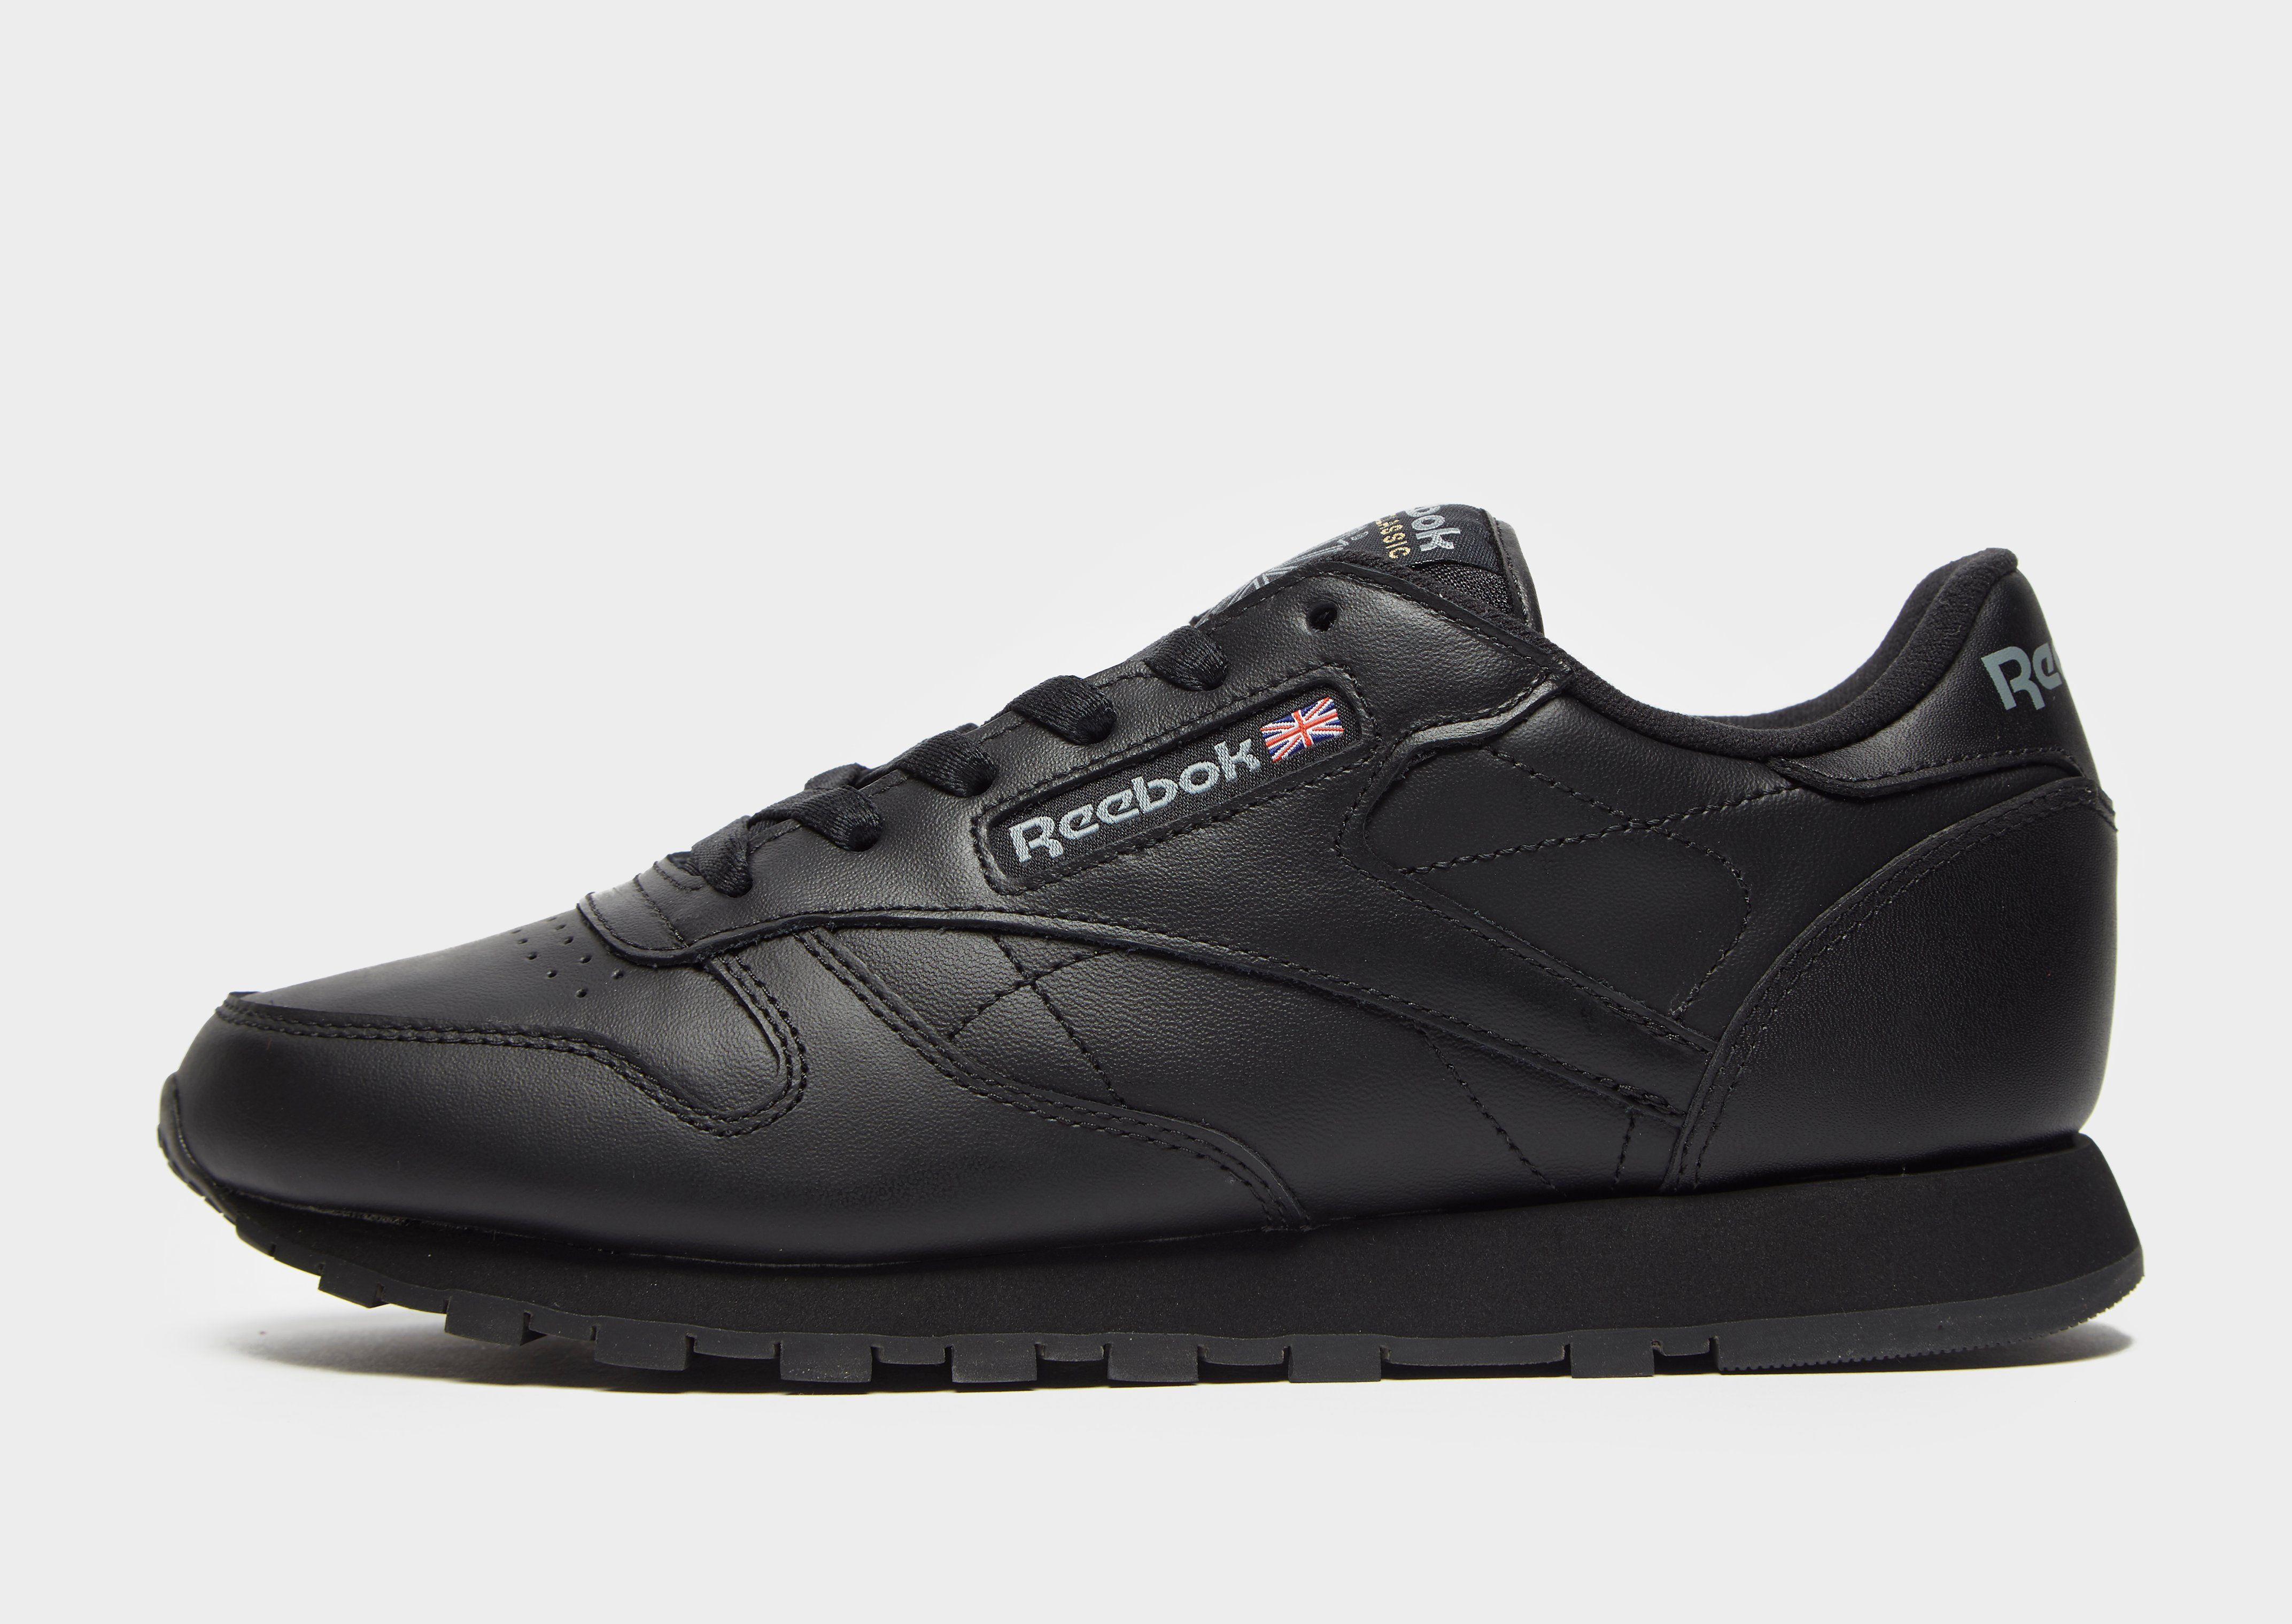 80e3d50d0abf12 Reebok Classic Leather Women s